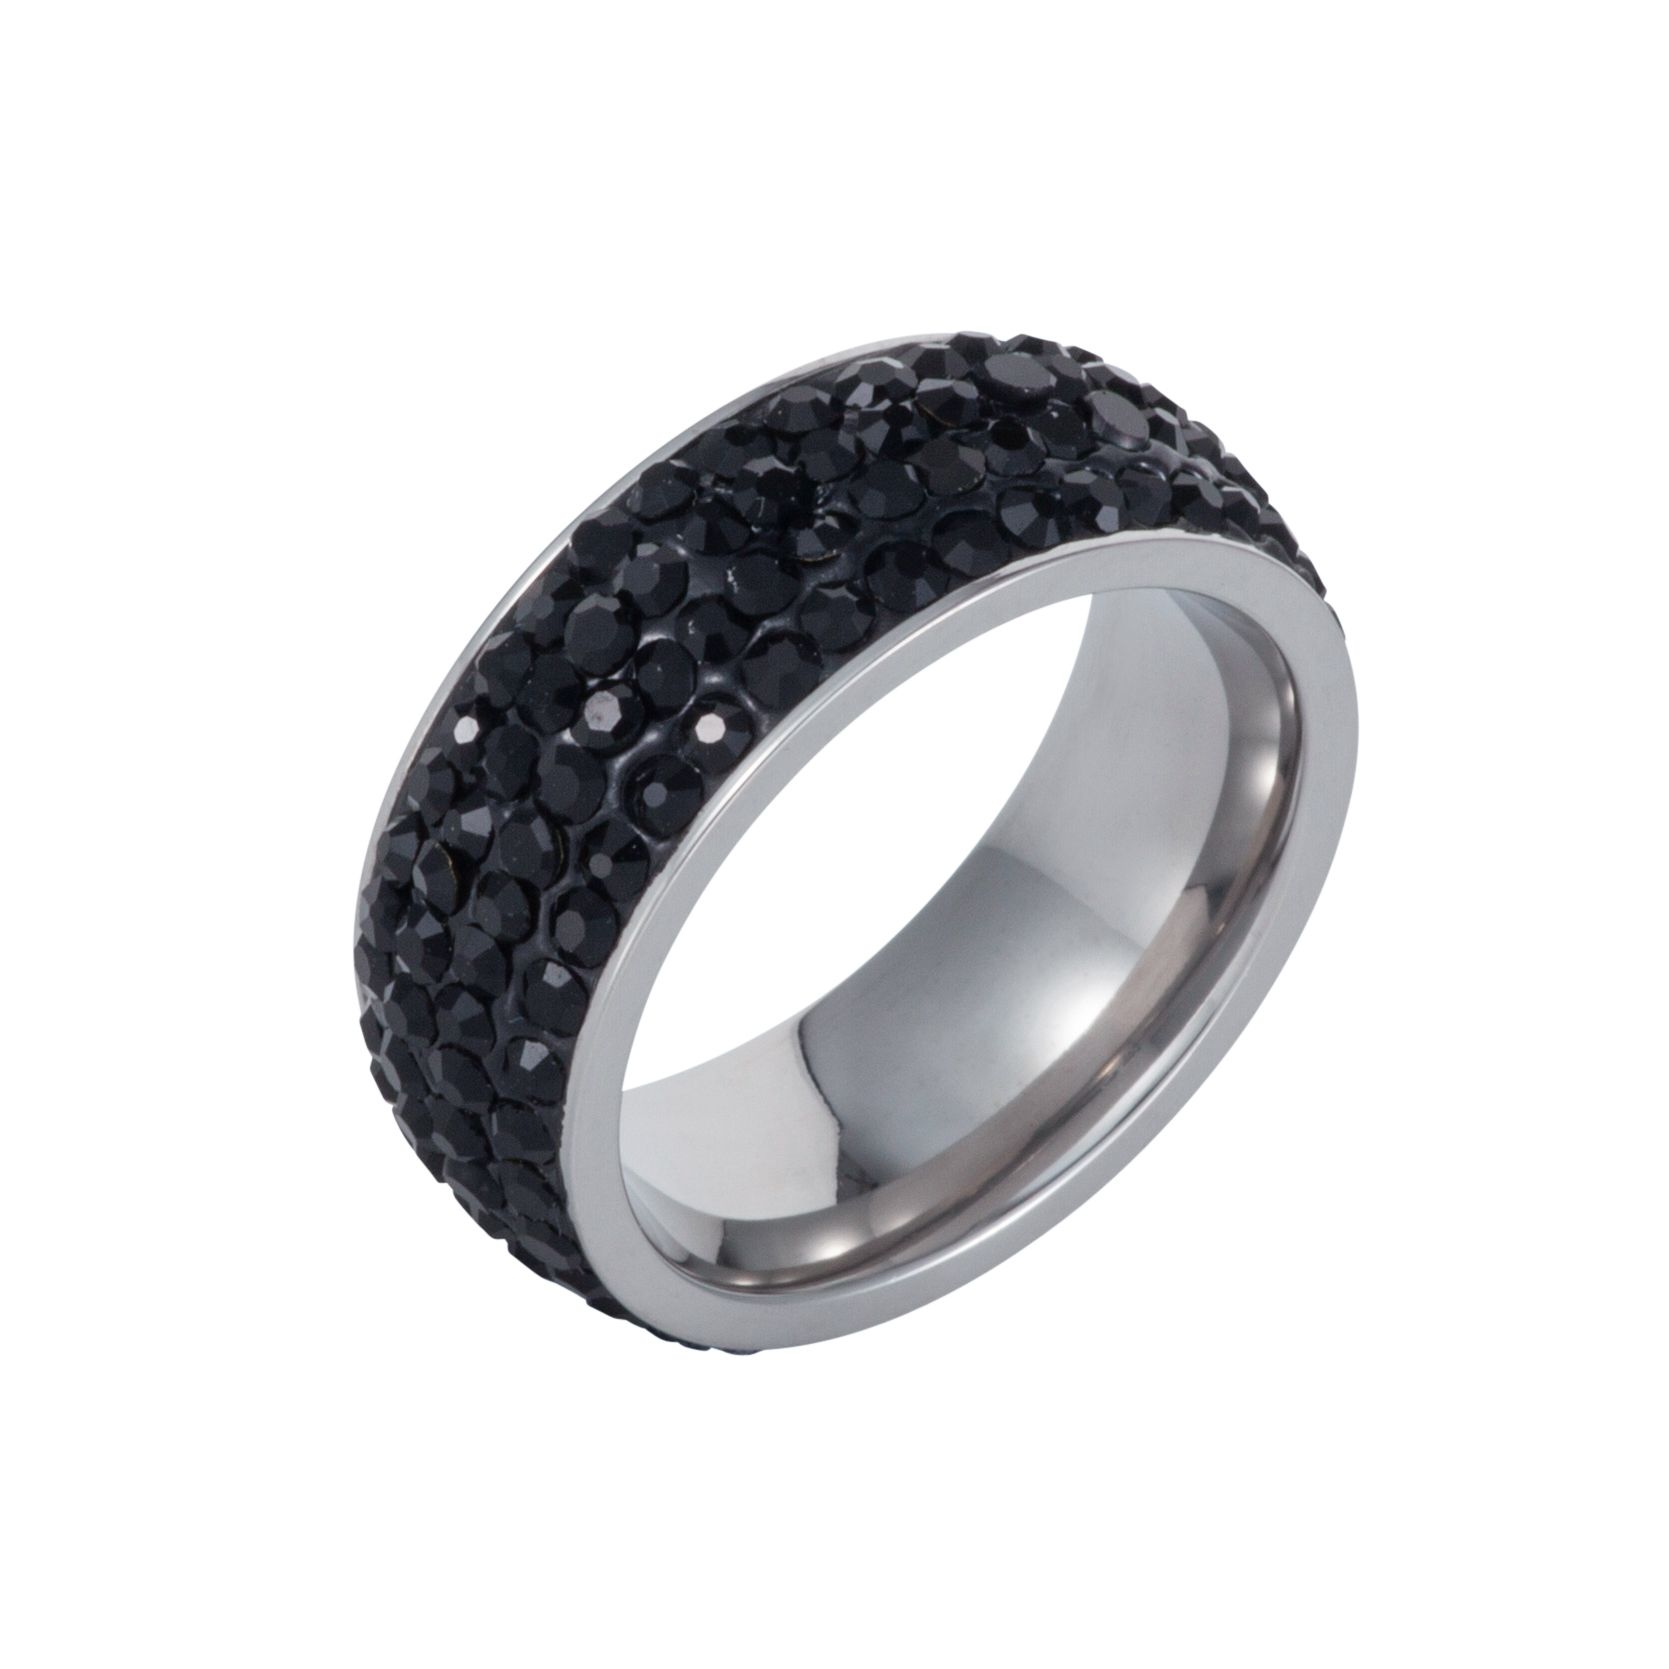 Stainless steel cubic zirconia black ring